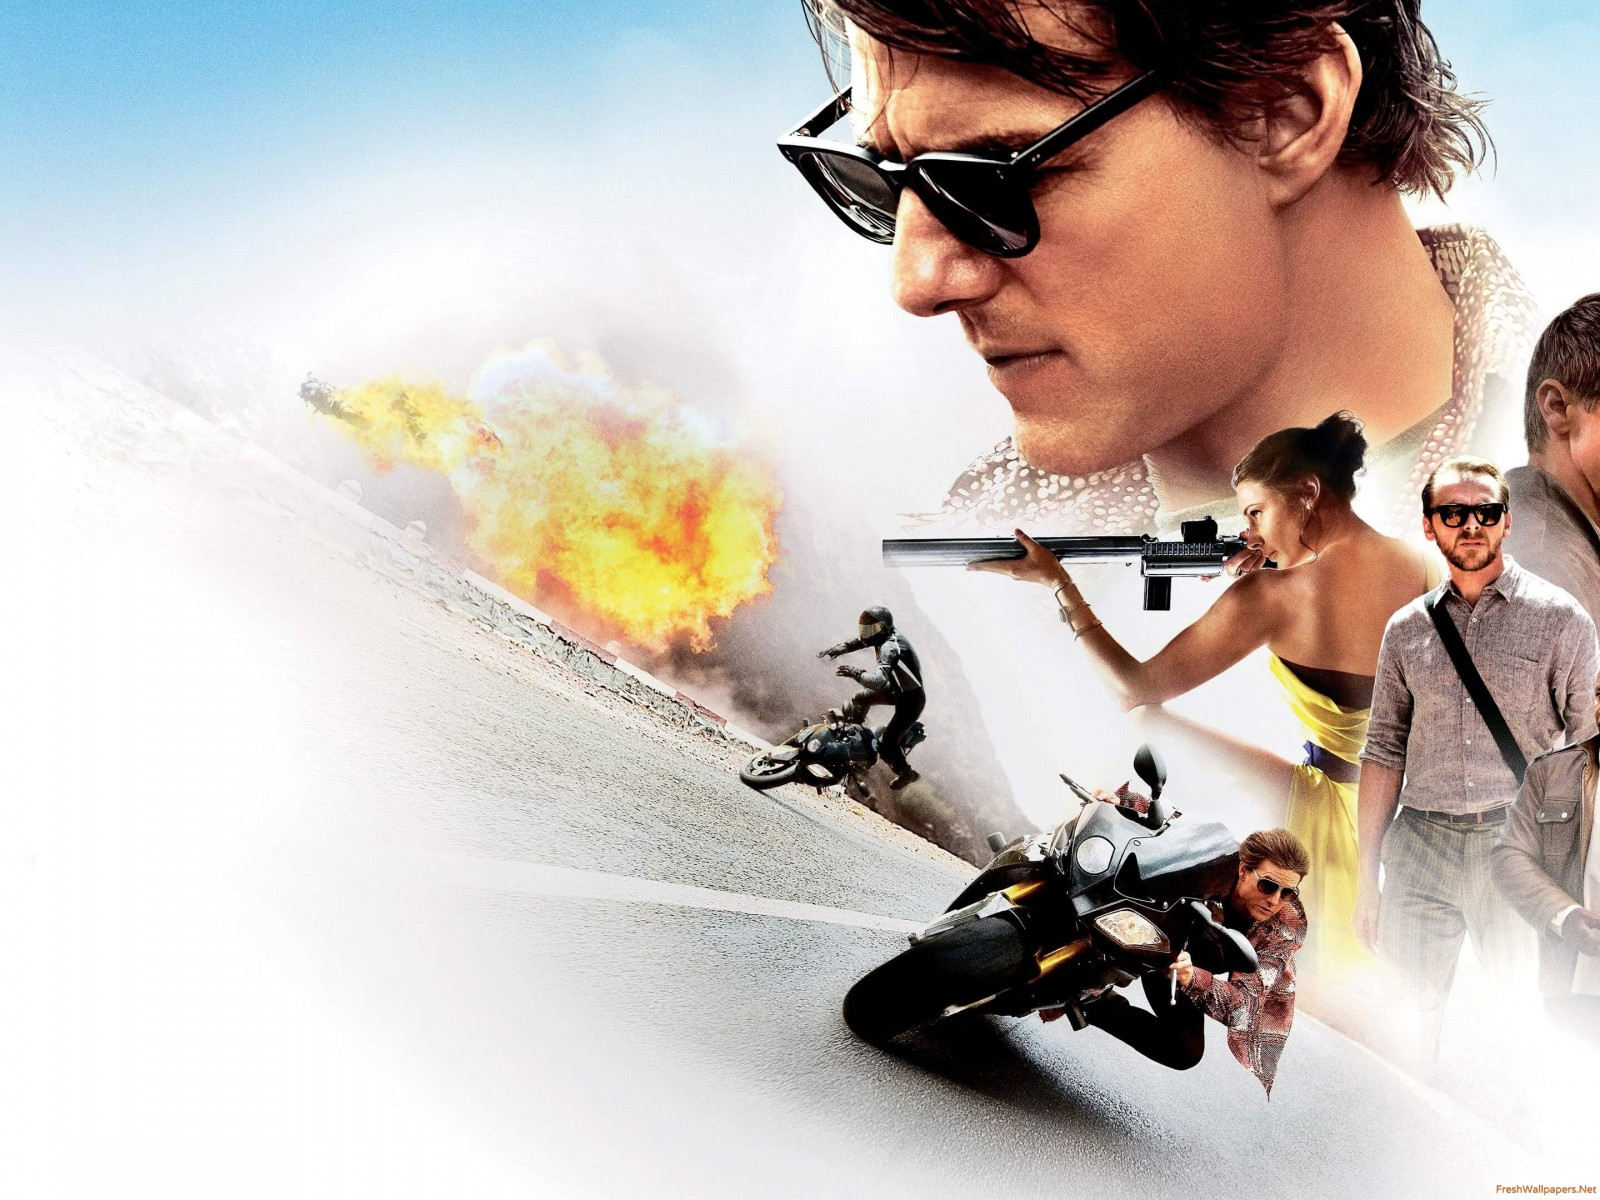 Poster_Mission_Impossible_5_1600x1200.jpg